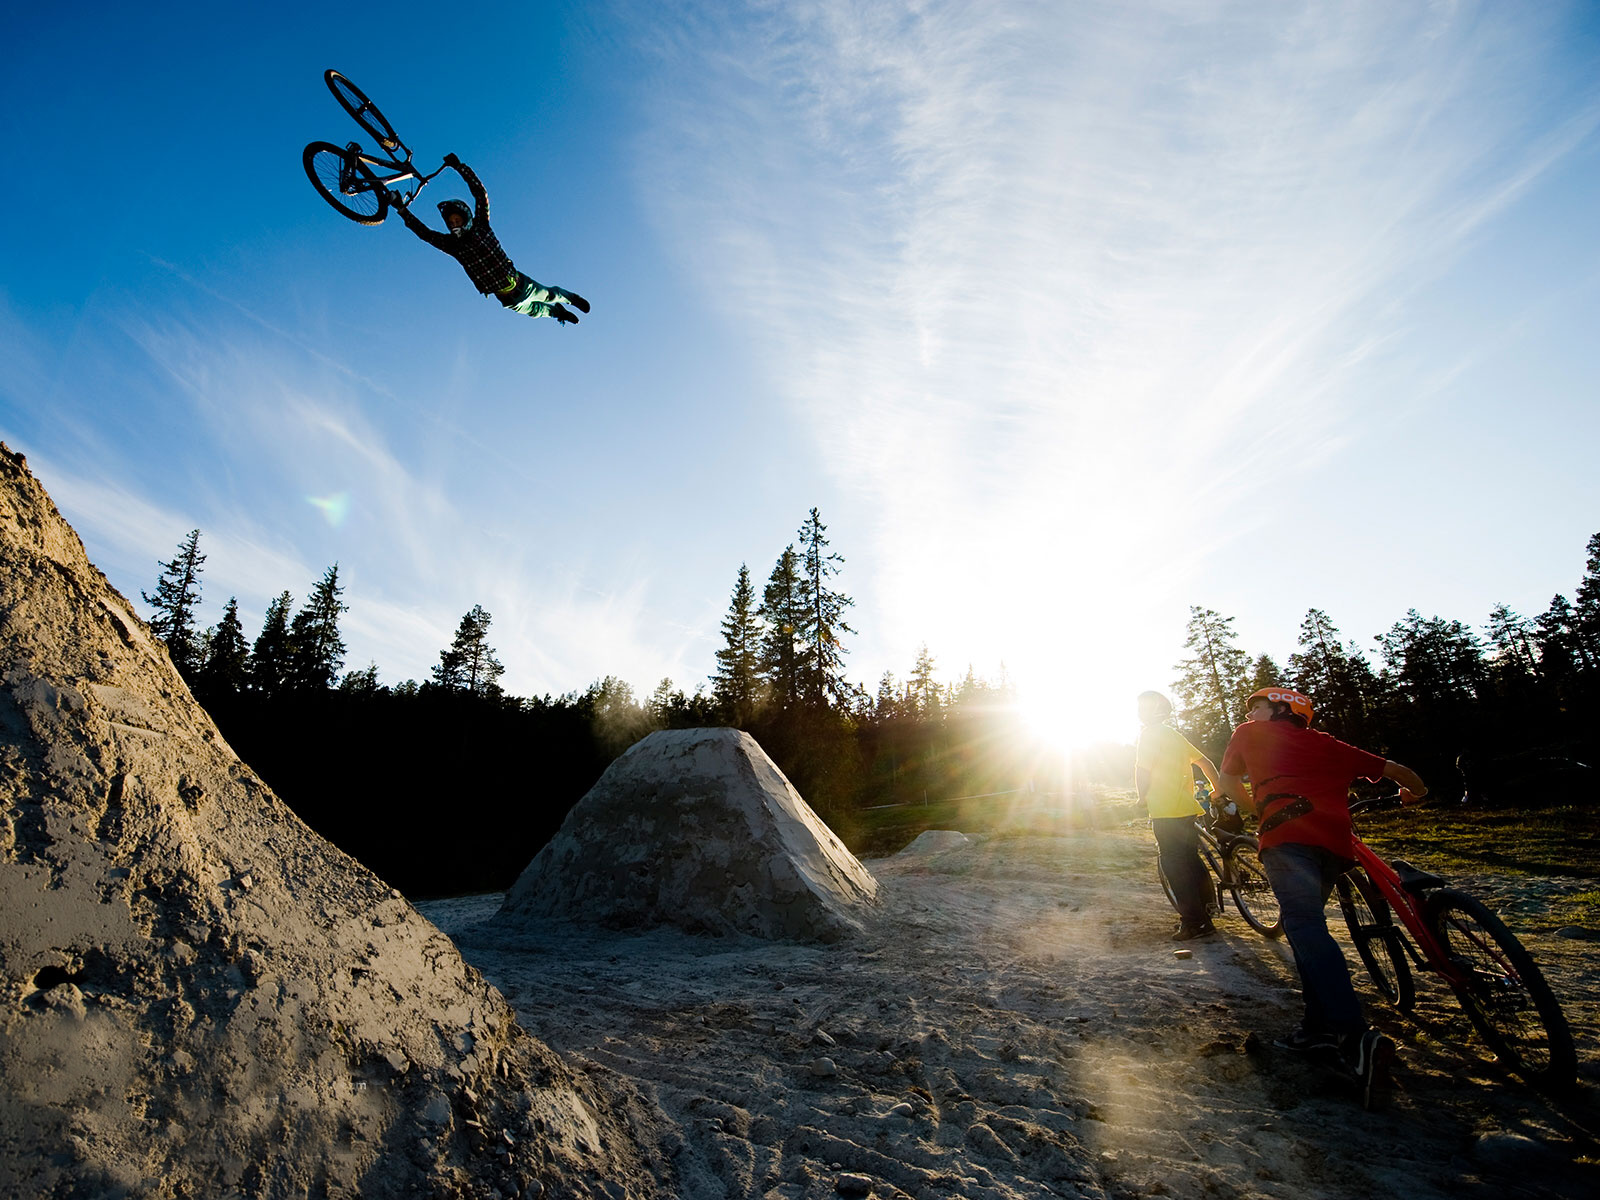 Extreme Sport Wallpapers: Extreme Sports - HD Videos